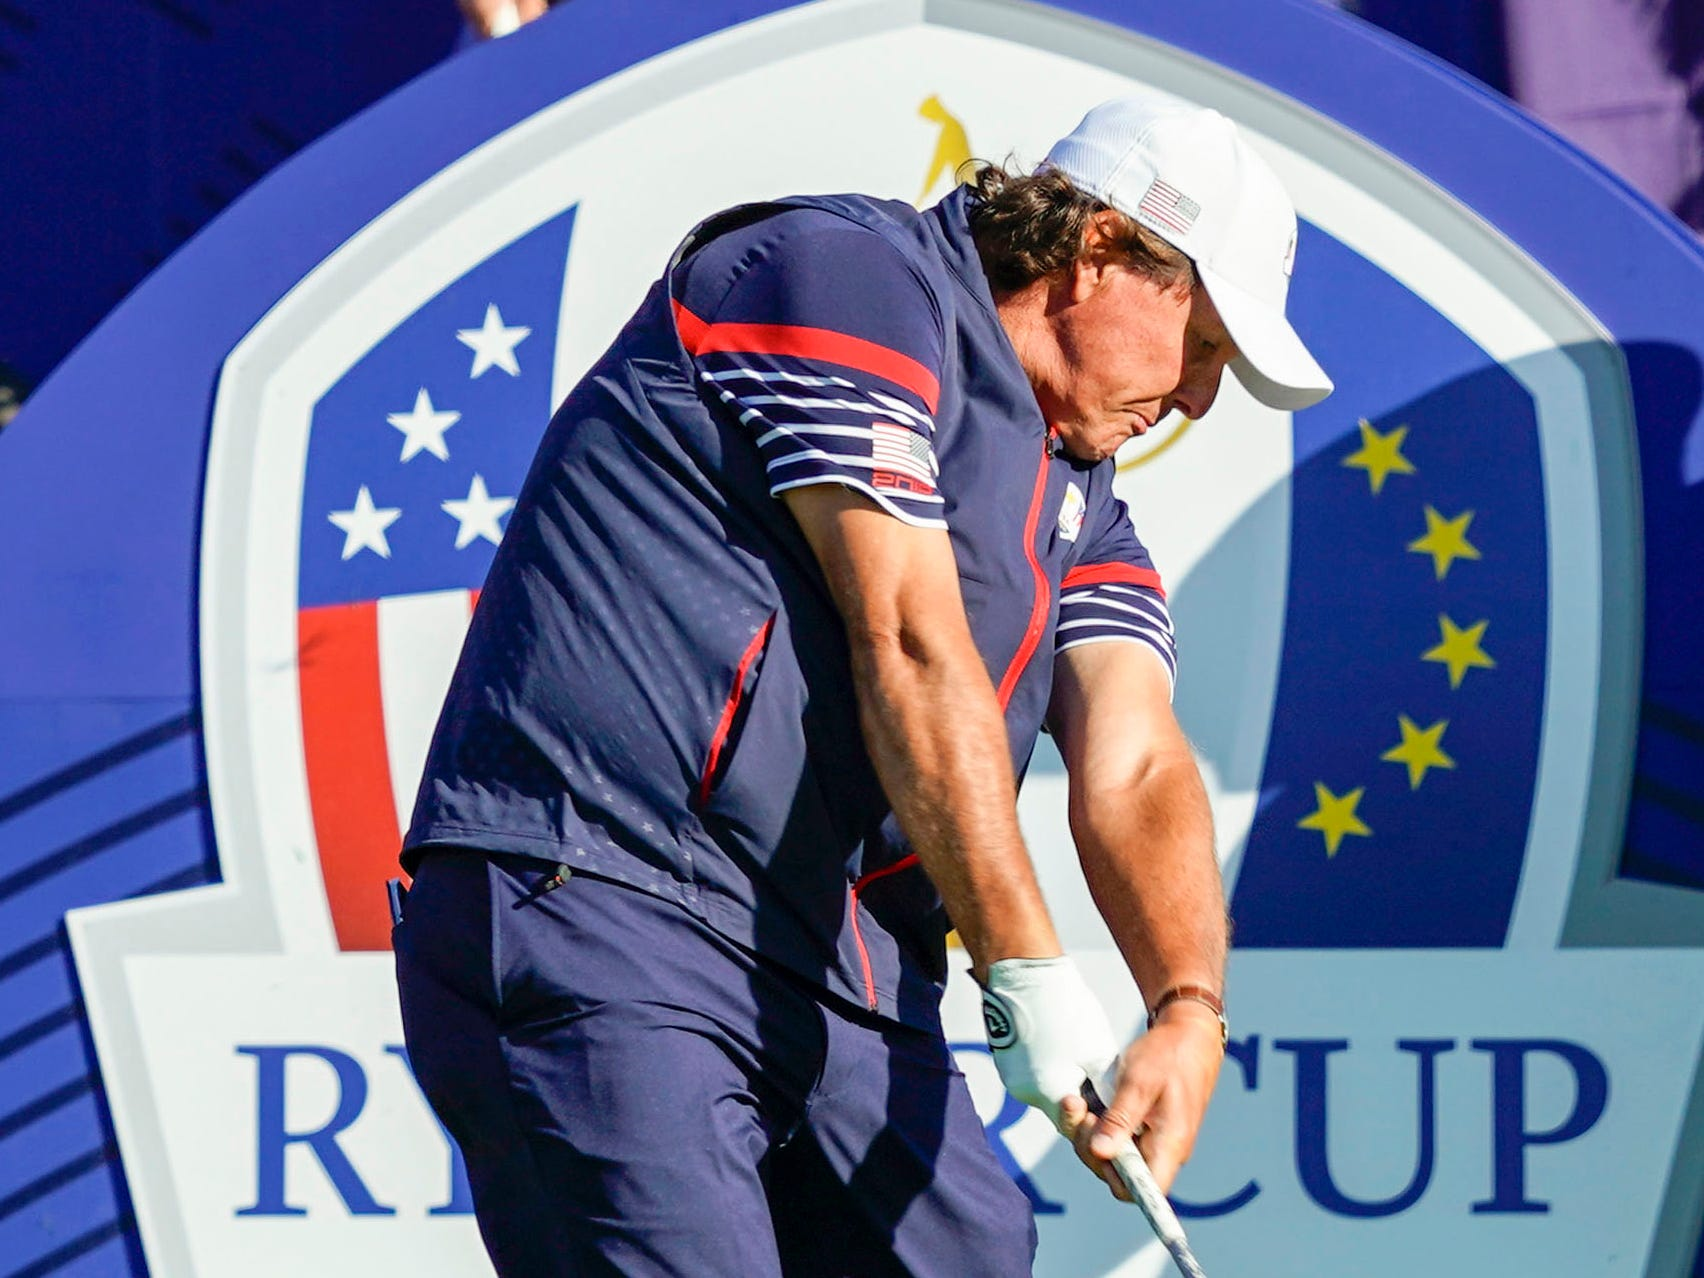 Phil Mickelson tees off at the hole during a Ryder Cup practice round.